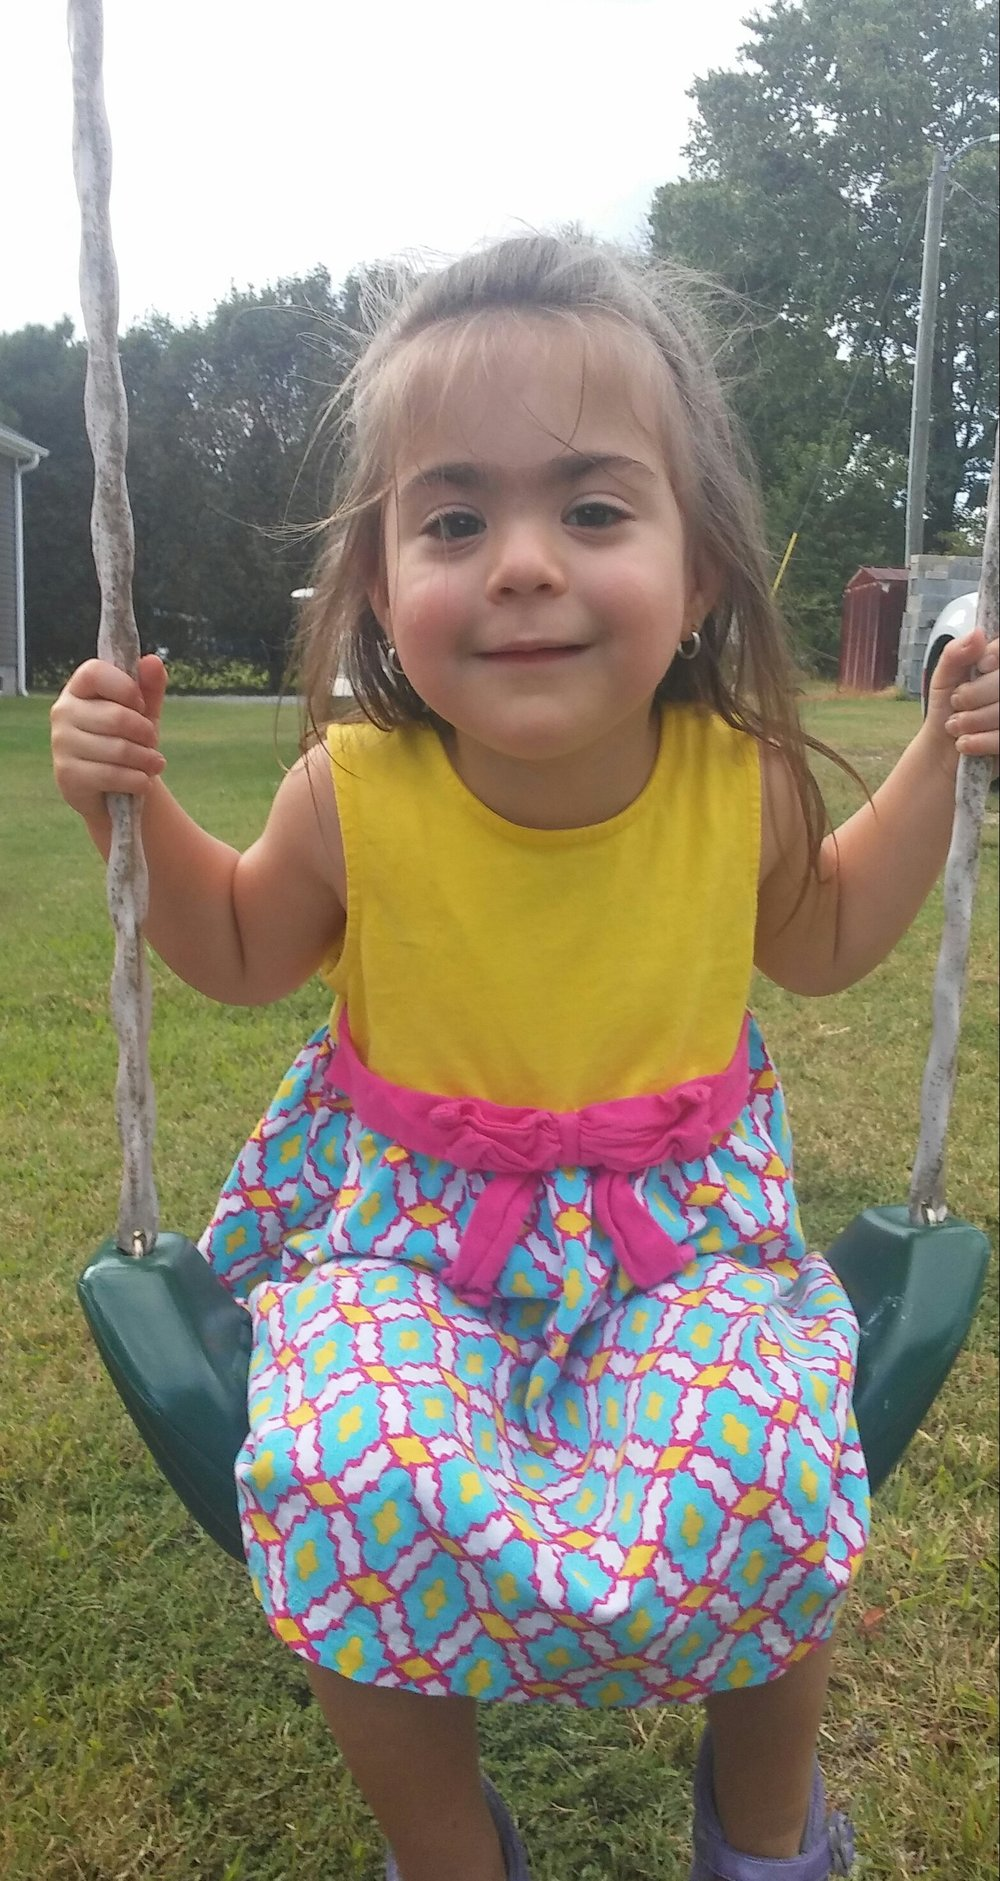 Mostly that people are afraid of the feeding tube. It is the best decision we have made so far for her health. - Jimmie Holt, Father of Raelyn Averie